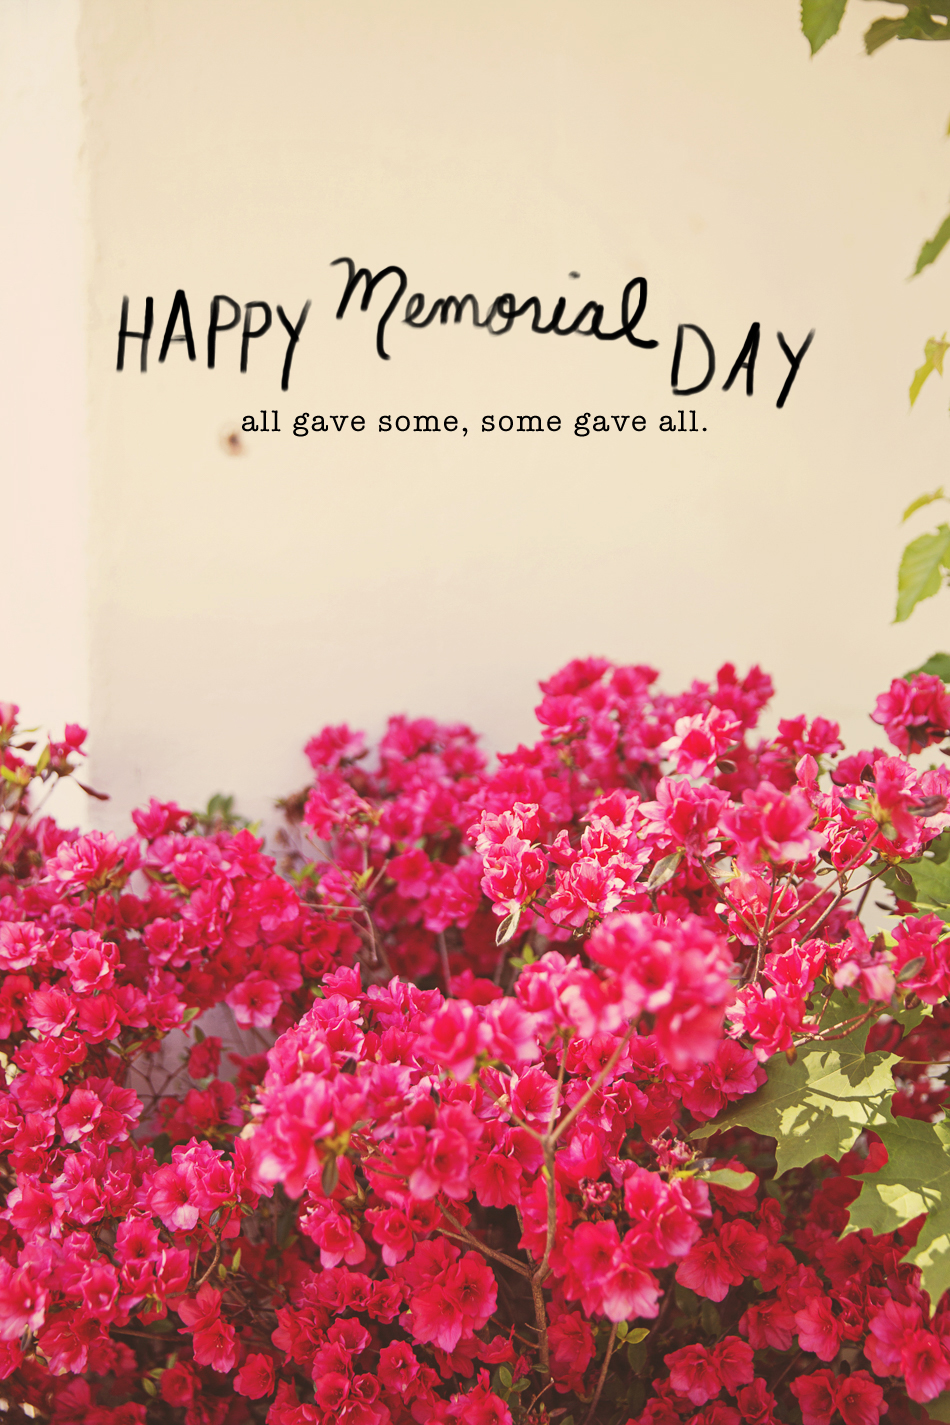 memorial day weekend // livelovesimple.com